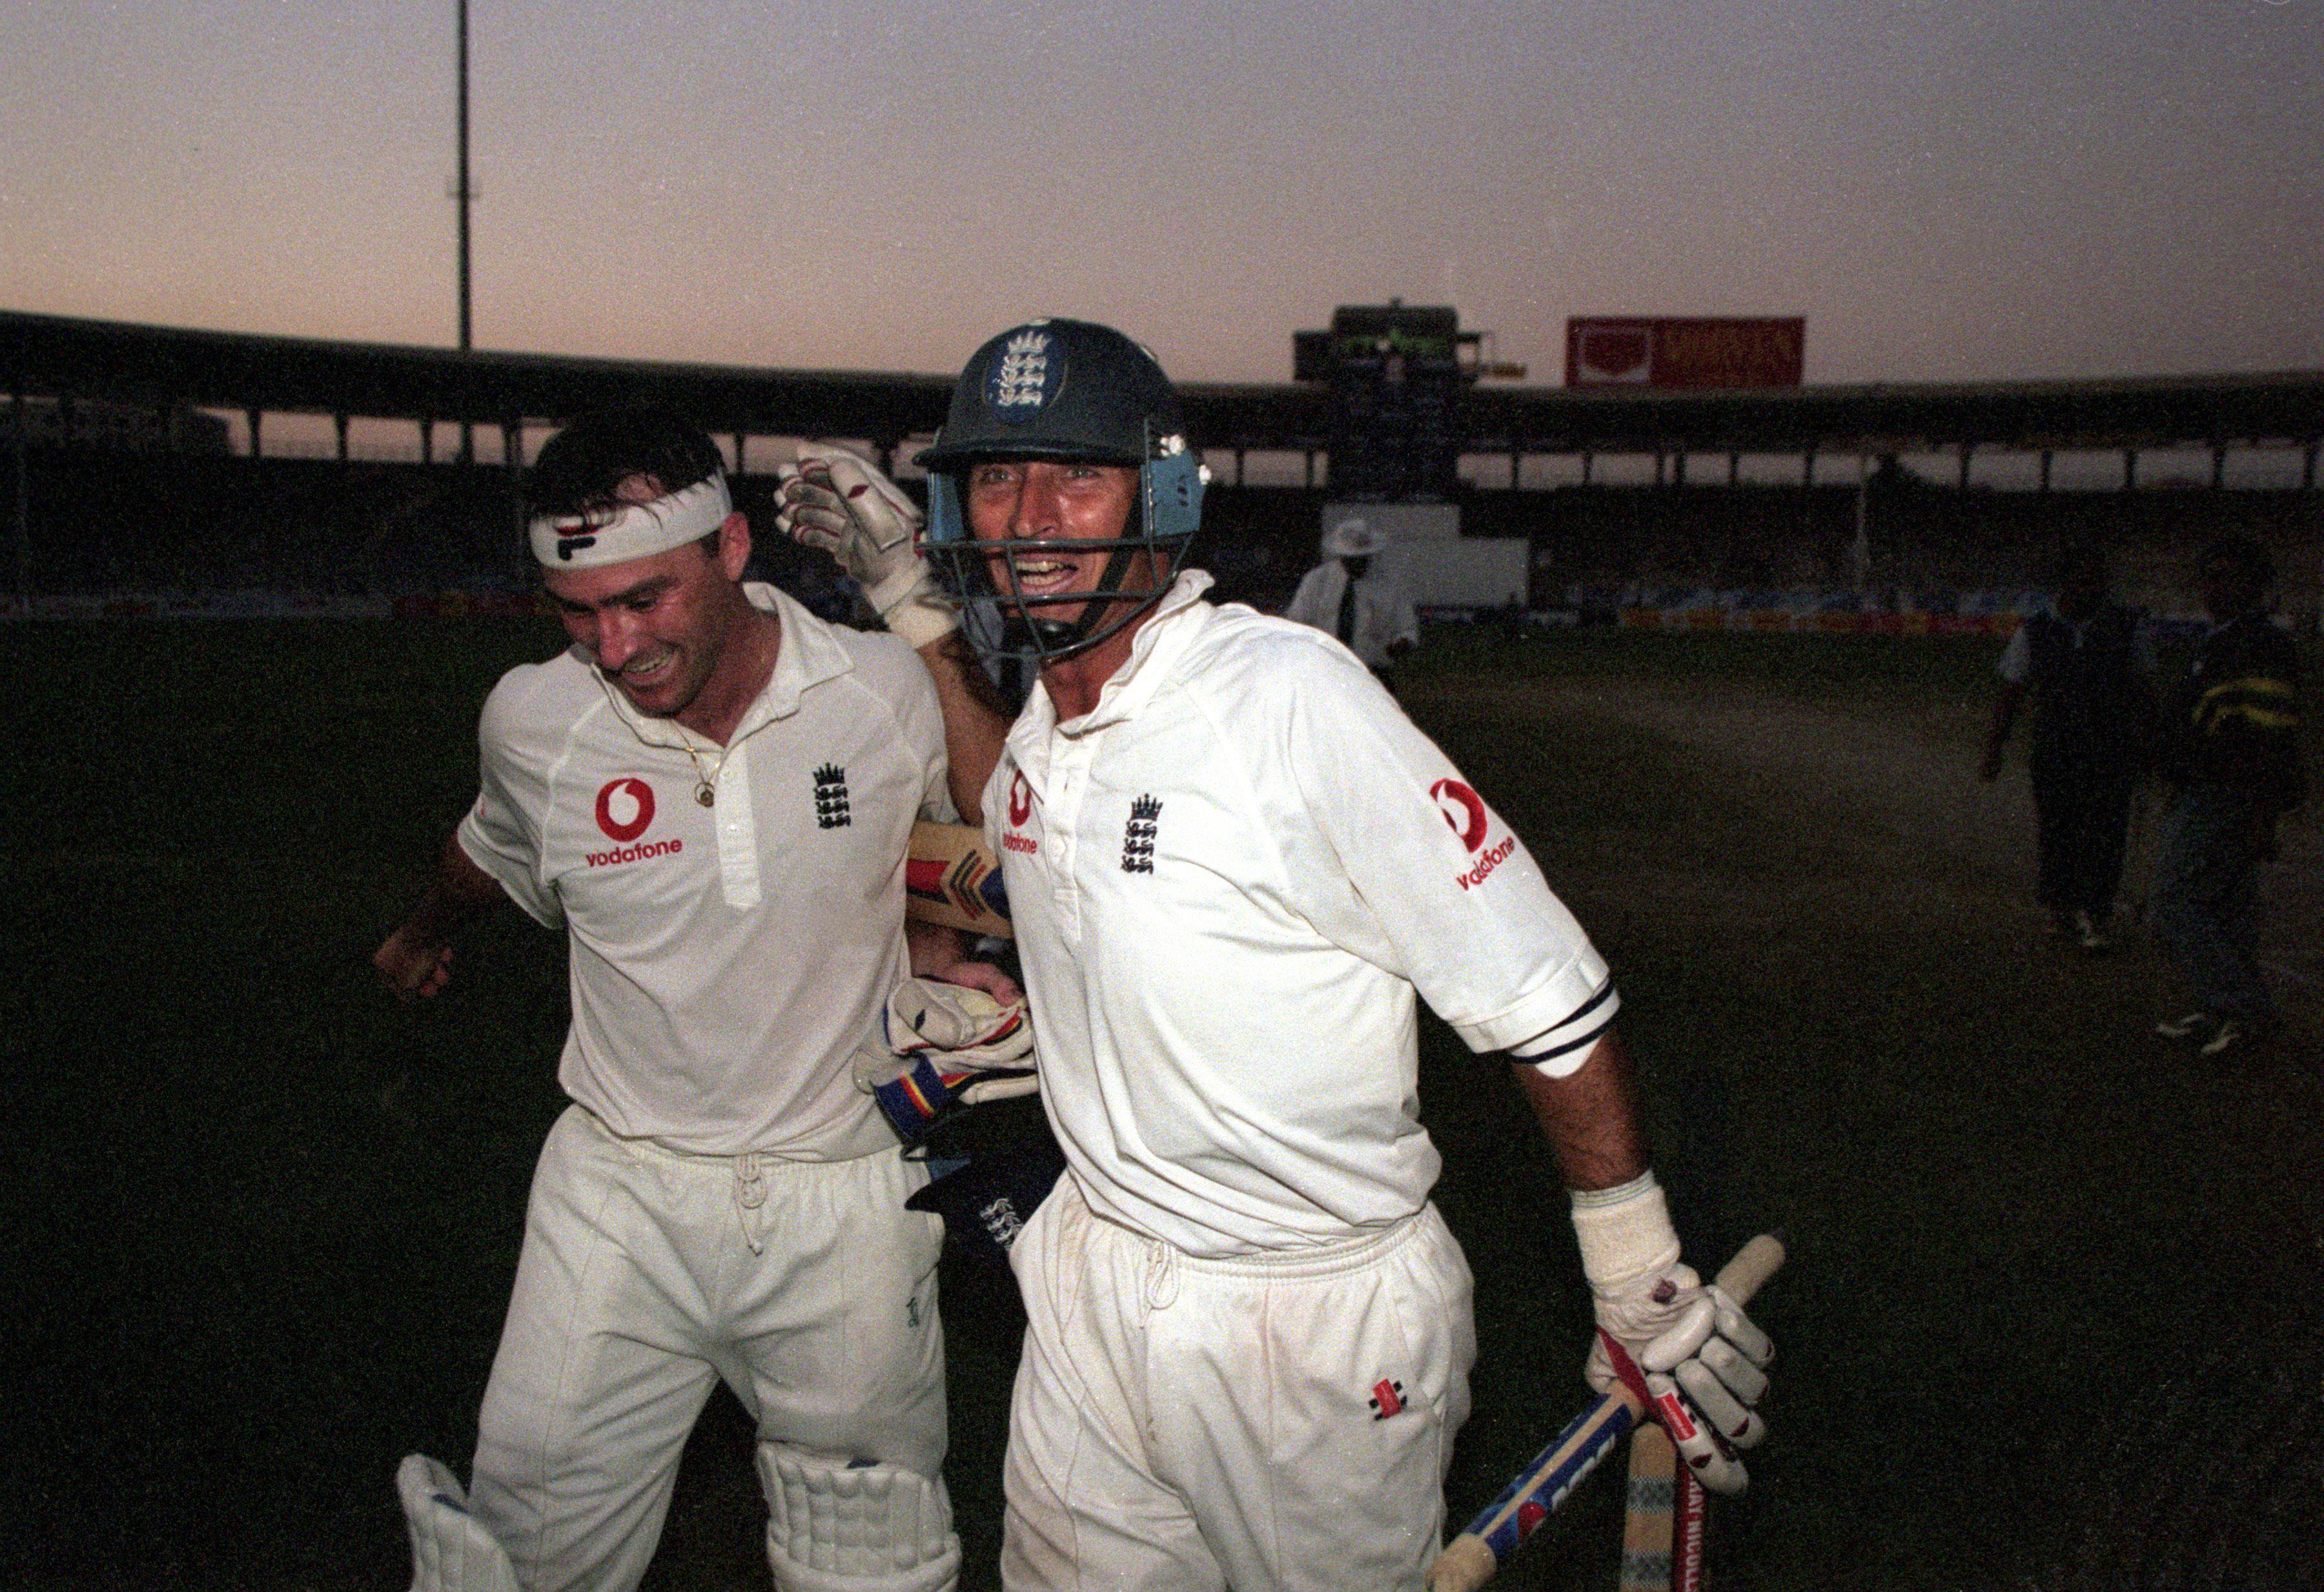 Graham Thorpe, left, and Nasser Hussain celebrate their victory